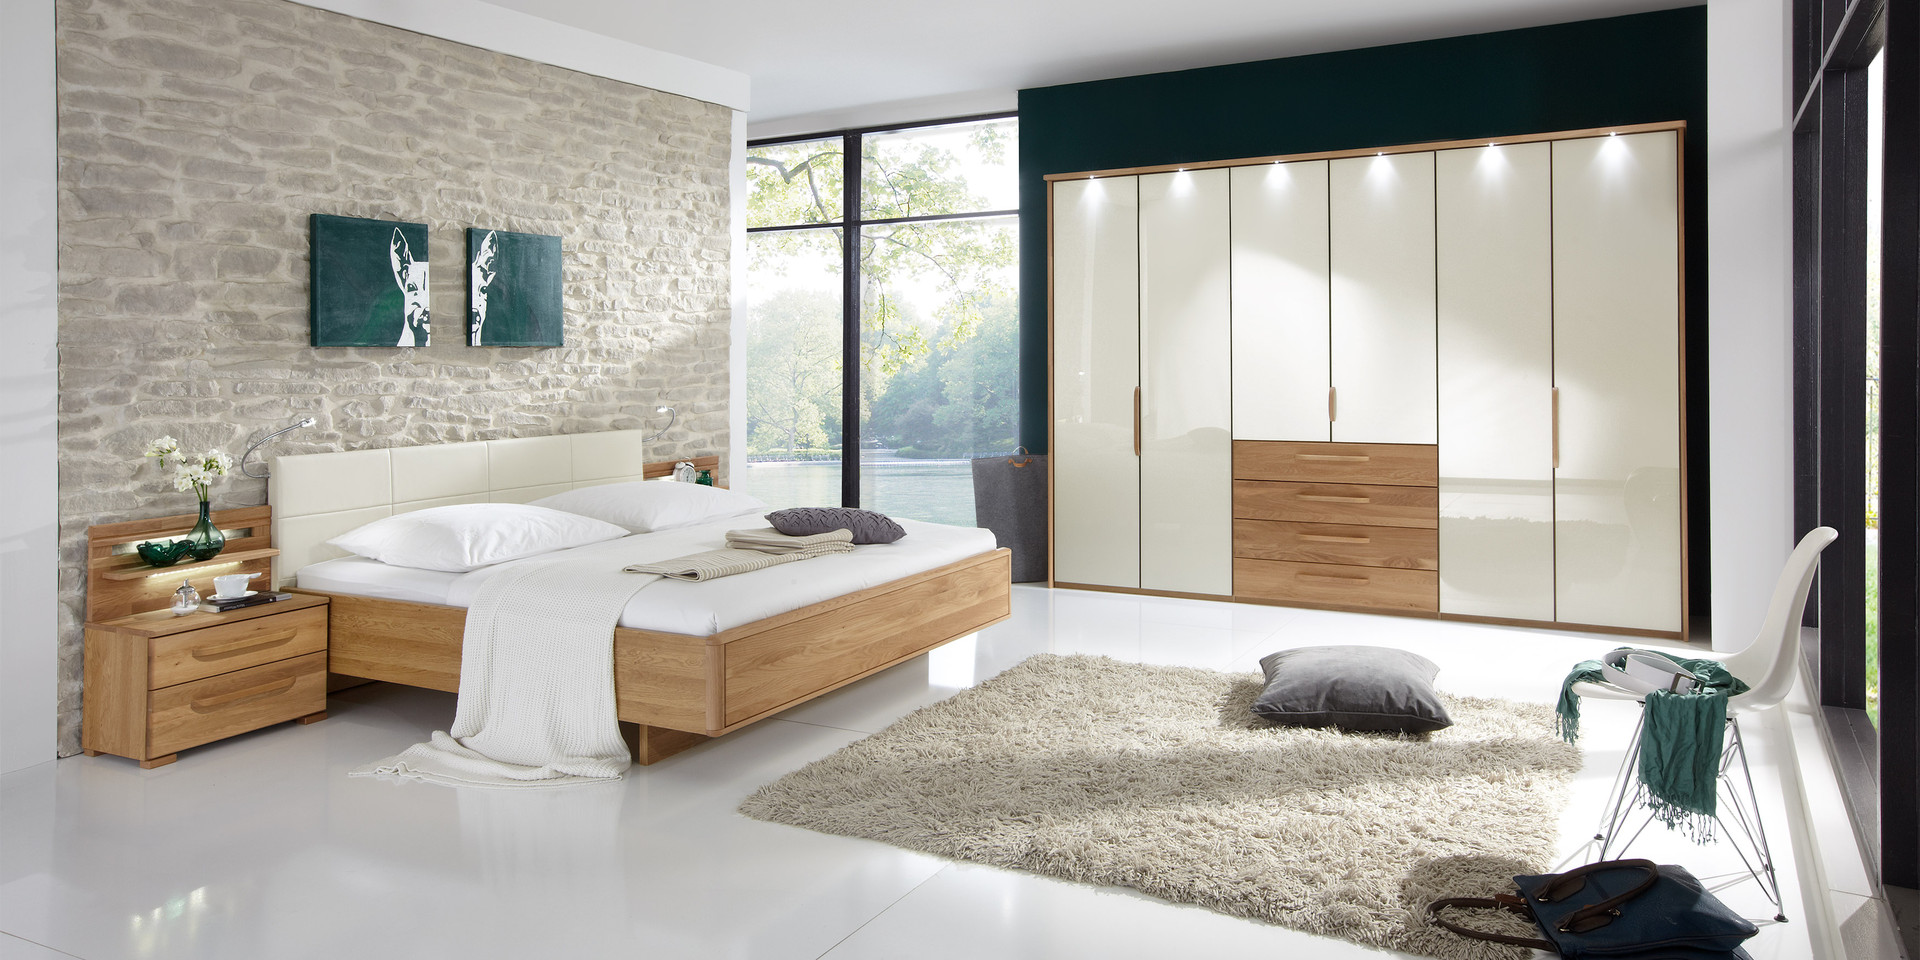 erleben sie das schlafzimmer torino m belhersteller wiemann. Black Bedroom Furniture Sets. Home Design Ideas